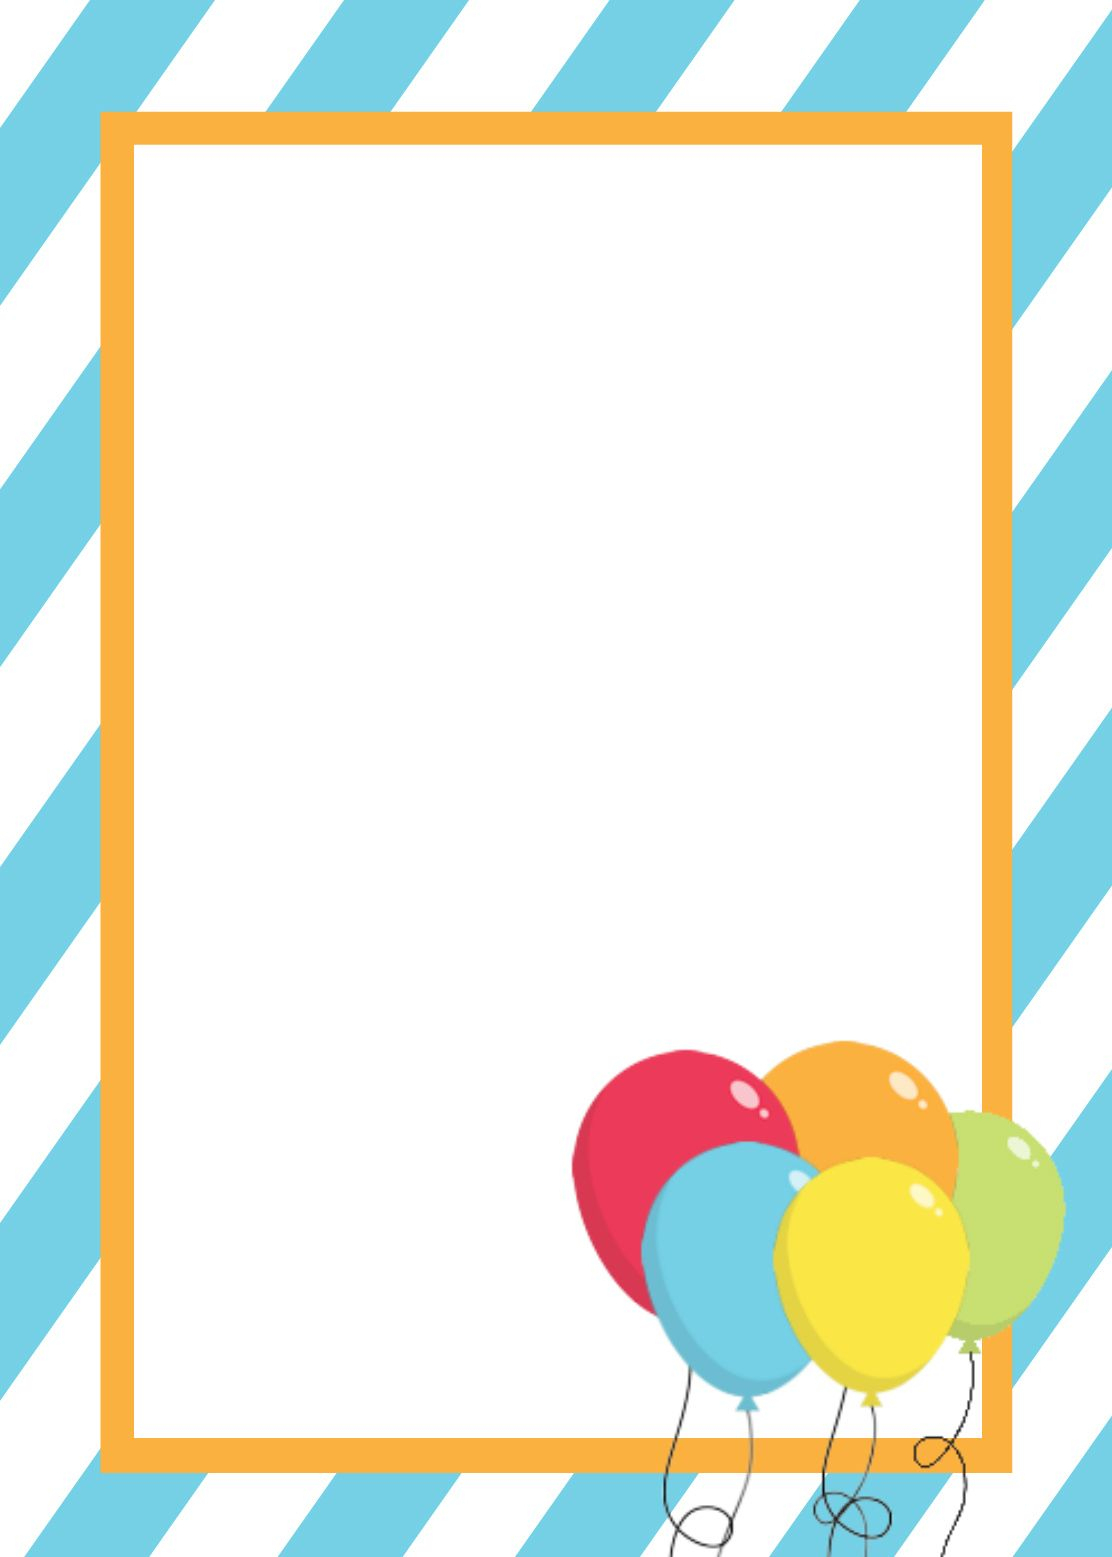 Free Printable Birthday Invitation Templates | Birthday Ideas And - Free Printable Birthday Invitations With Pictures